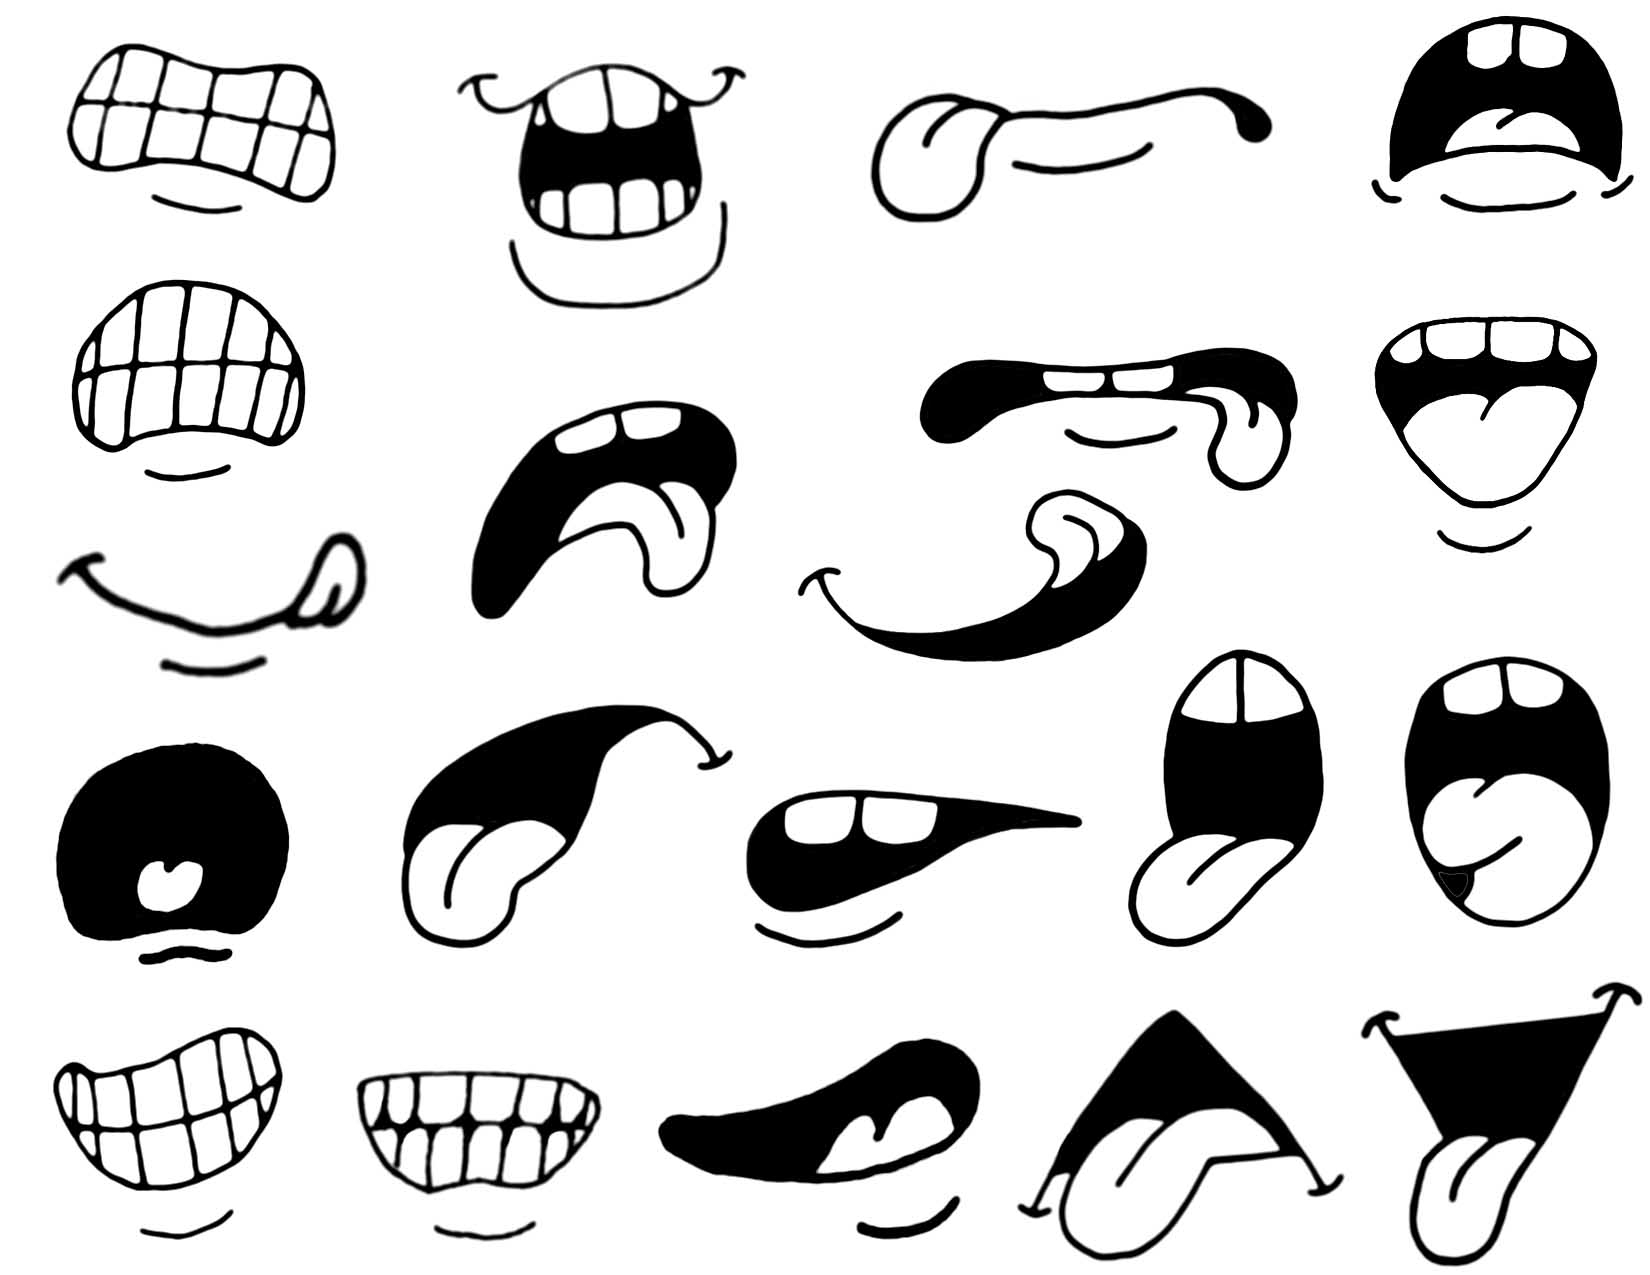 1650x1275 Cartoon Mouth Drawing How To Draw Cartoon Mouths.